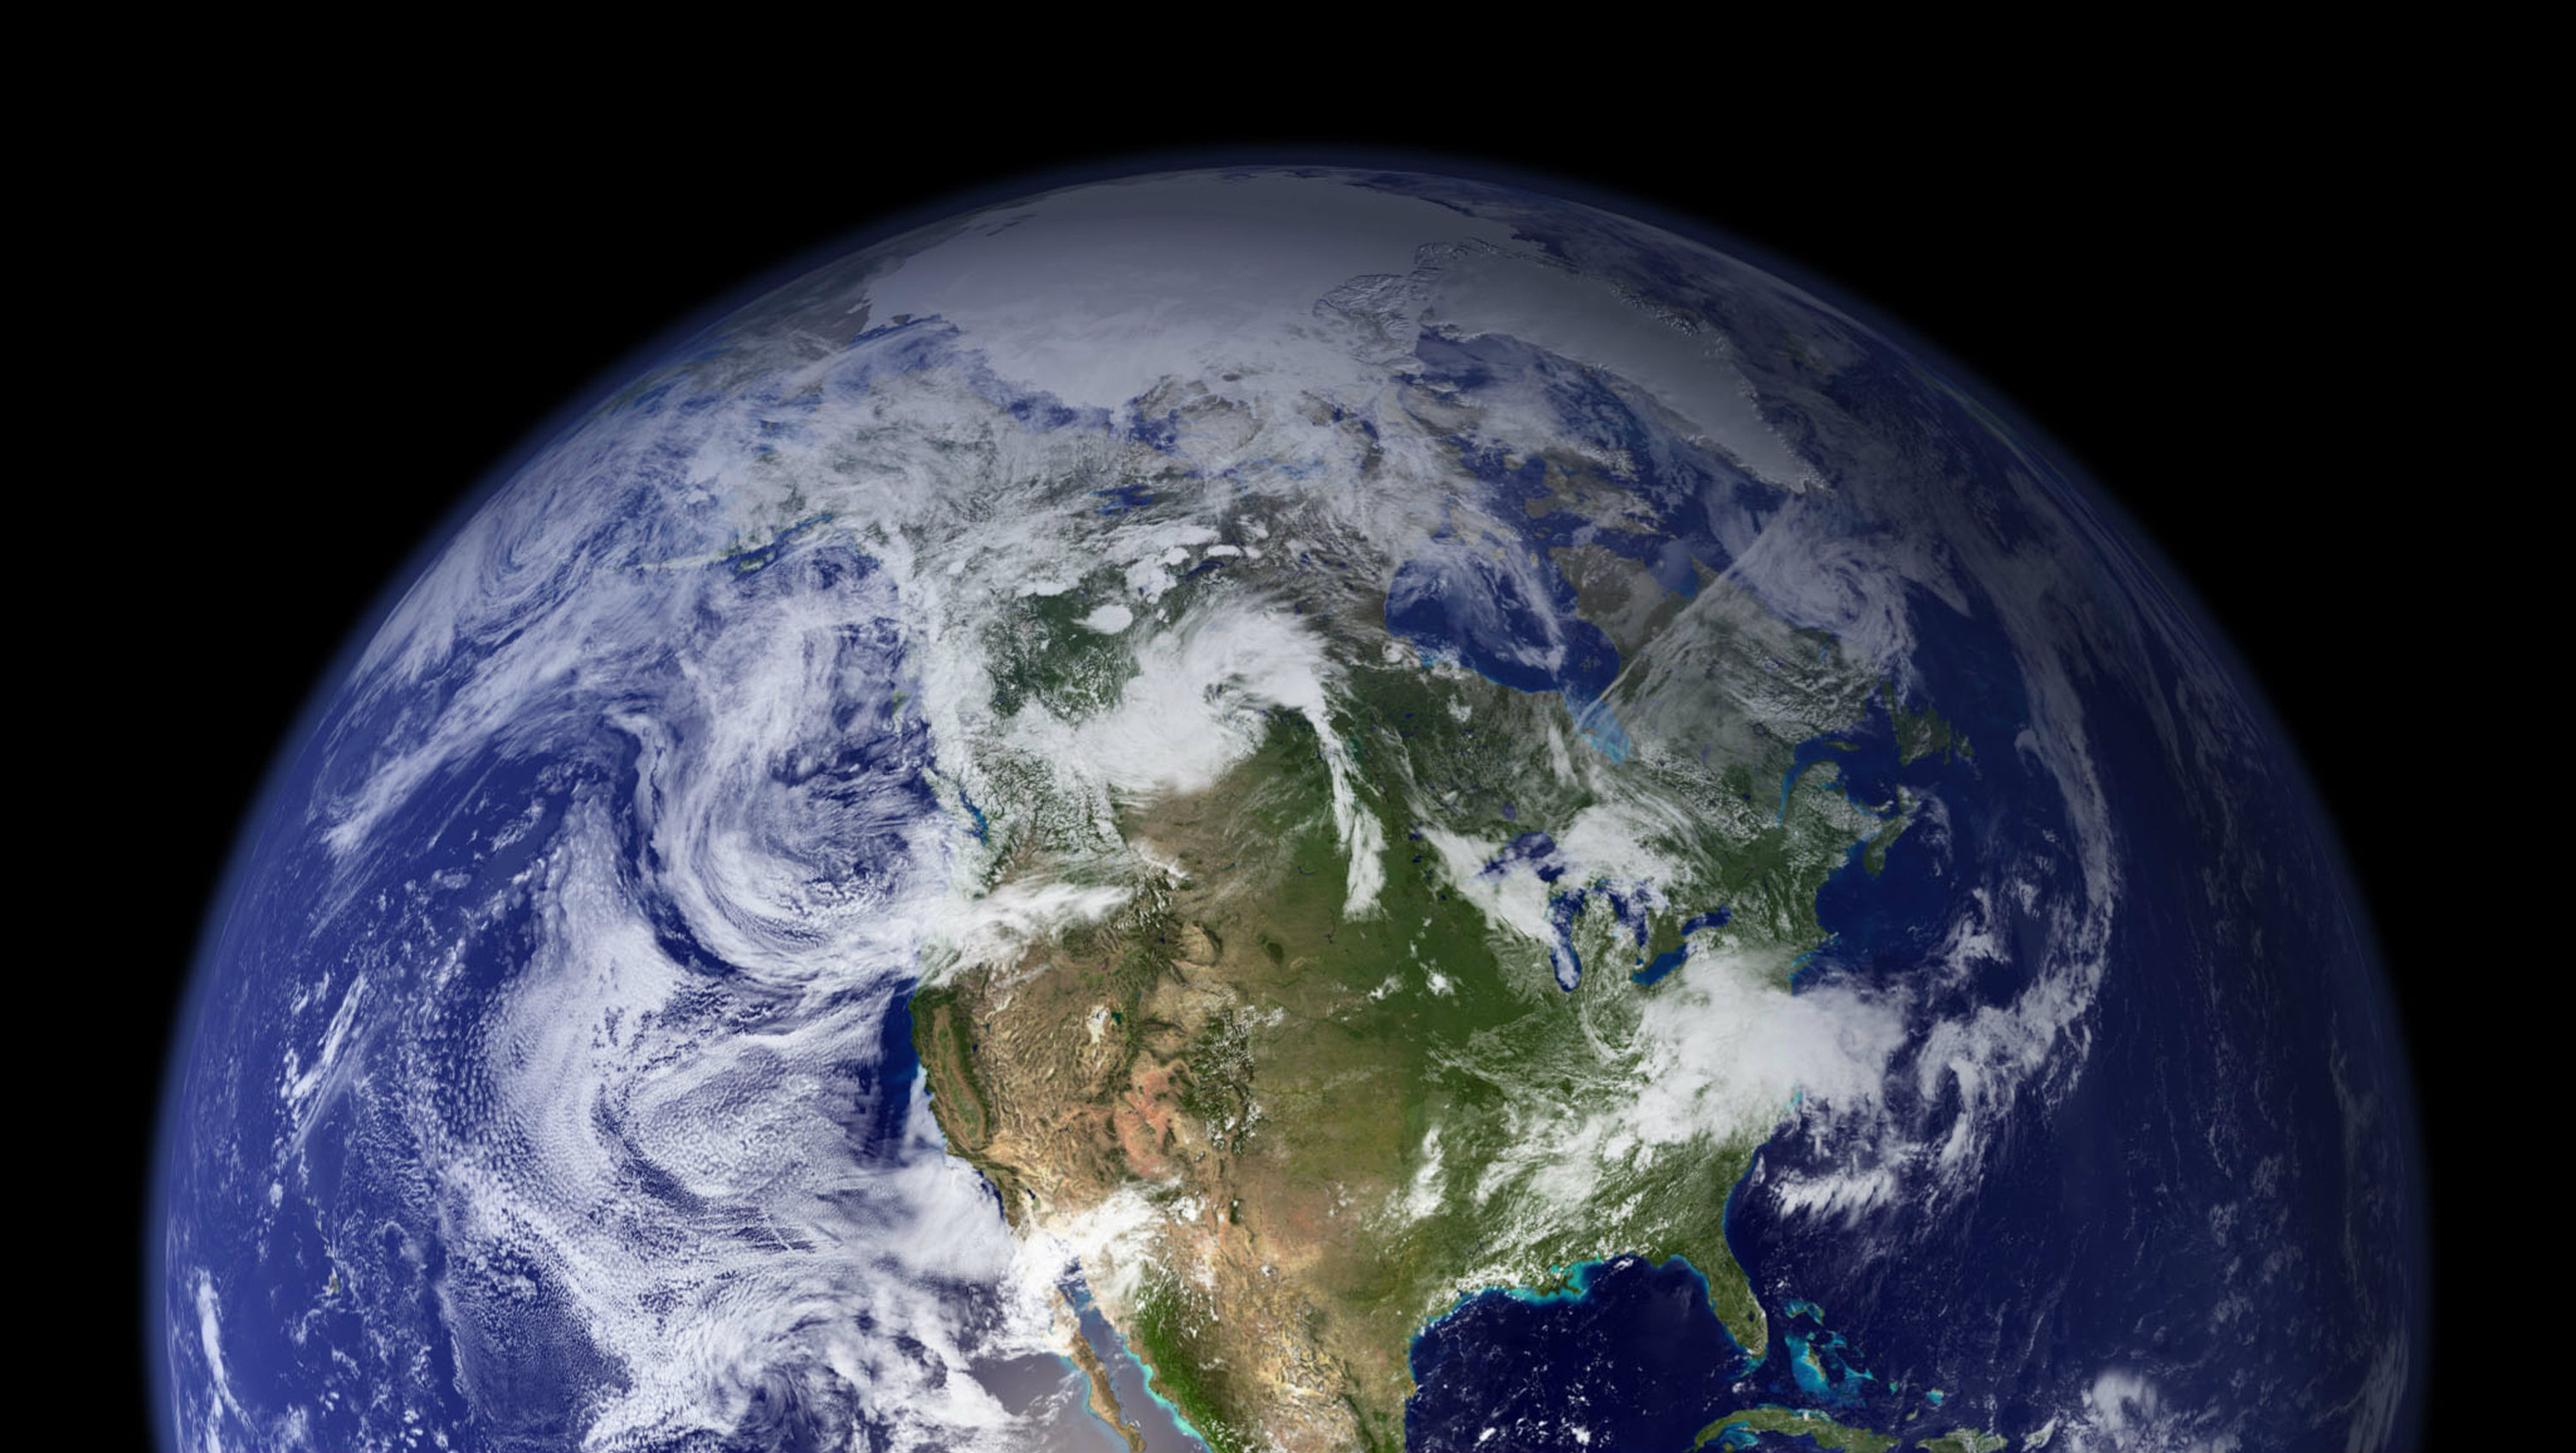 NASA space image of planet earth